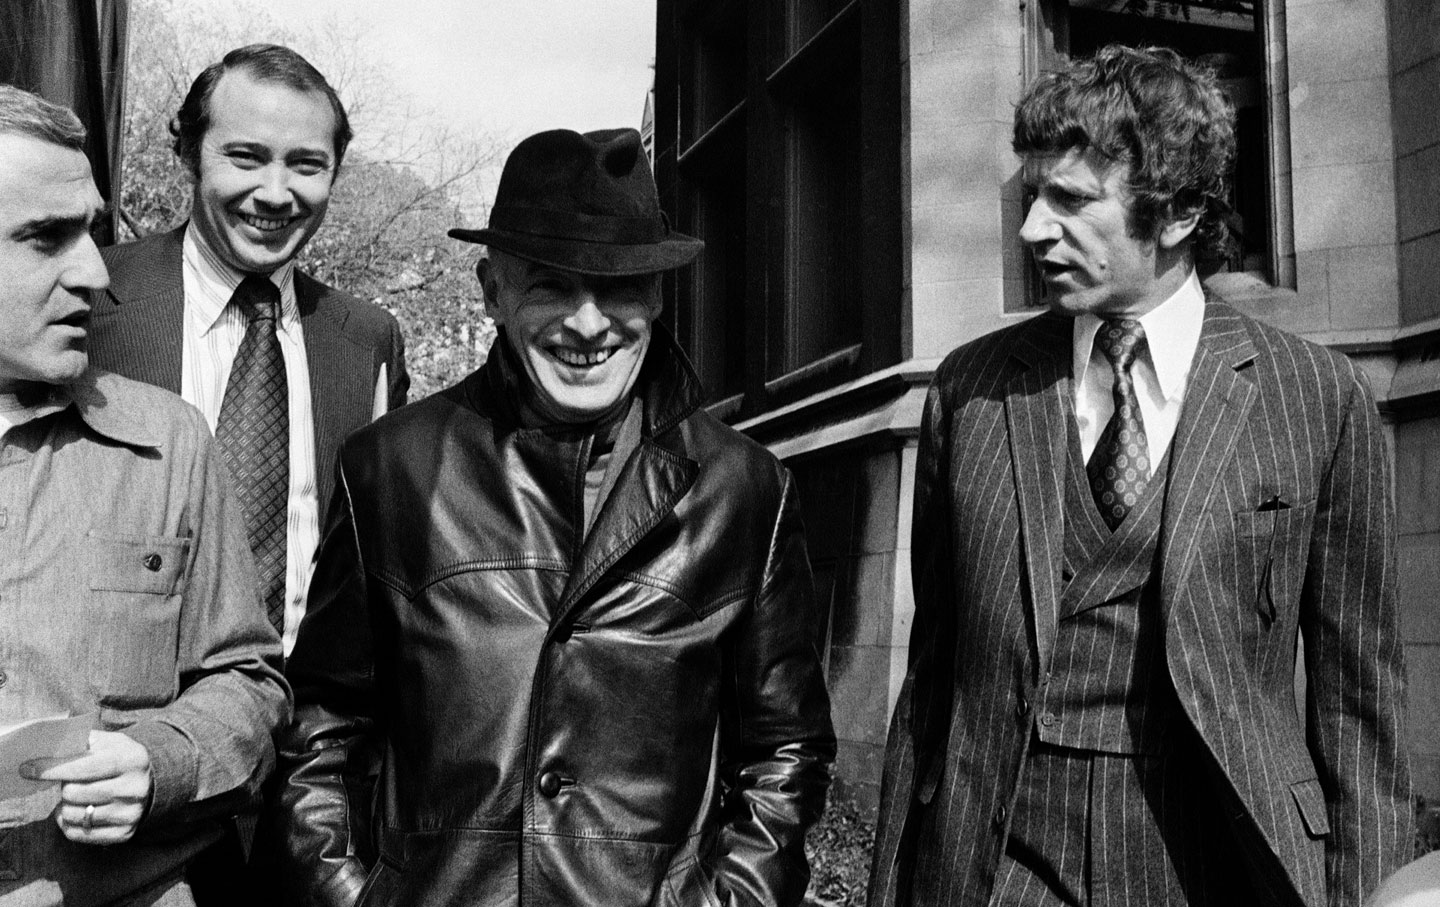 Saul Bellow (middle) after acknowledging his receipt of the Nobel Prize in Literature, October 22, 1976. (Credit: Charles Knoblock / AP)